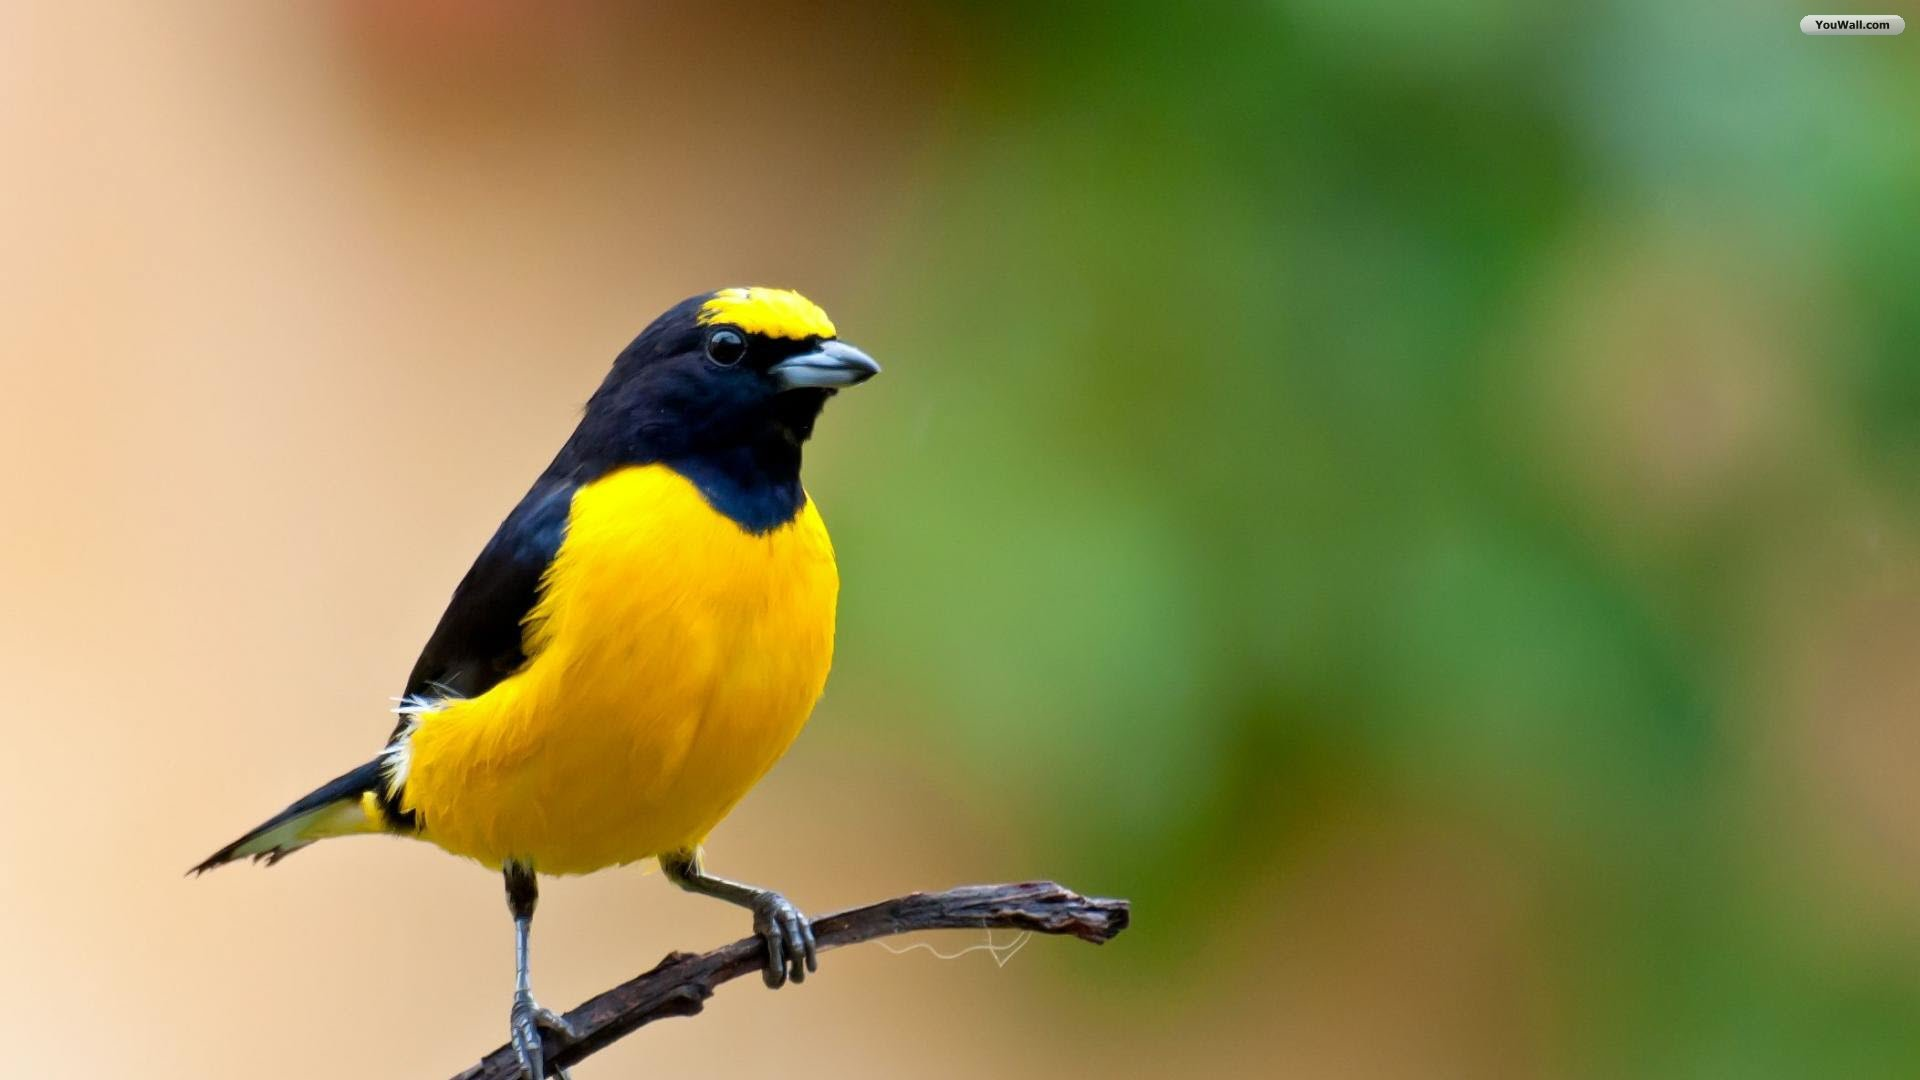 Yellow-Bird-Wallpaper-HD